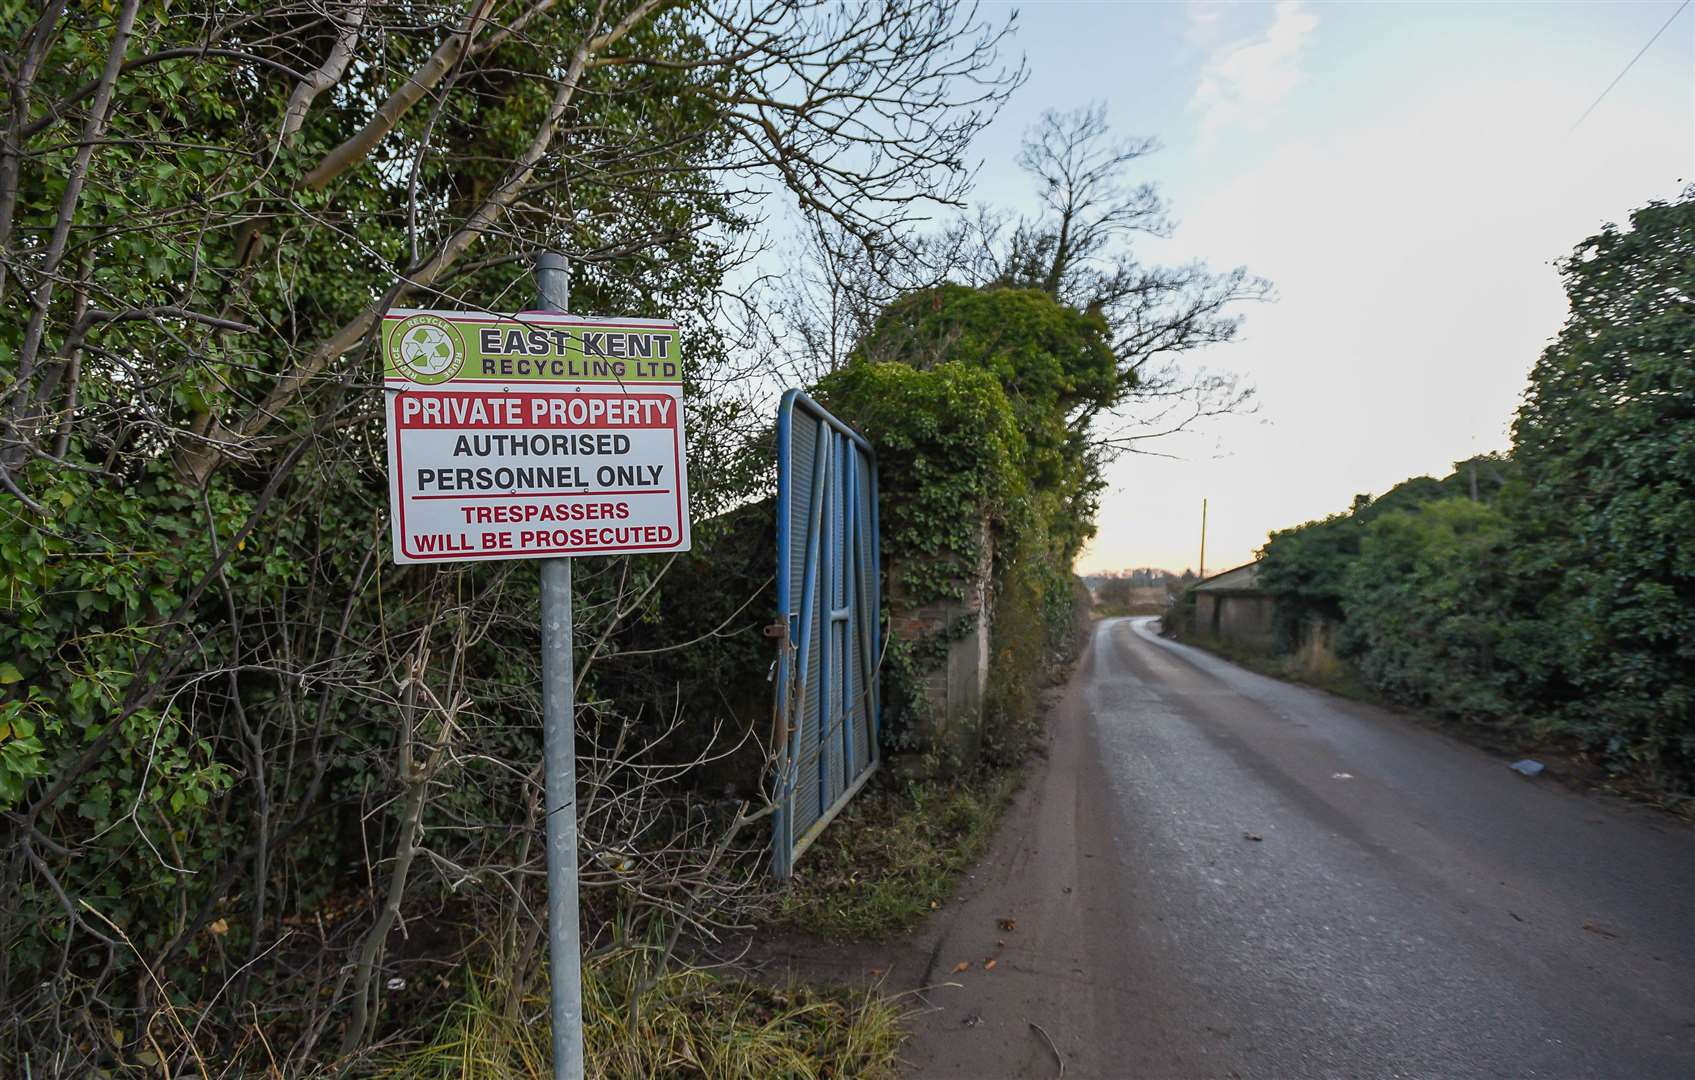 There have been objections to the expansion of recycling plant near Oare, Faversham Picture: Alan Langley